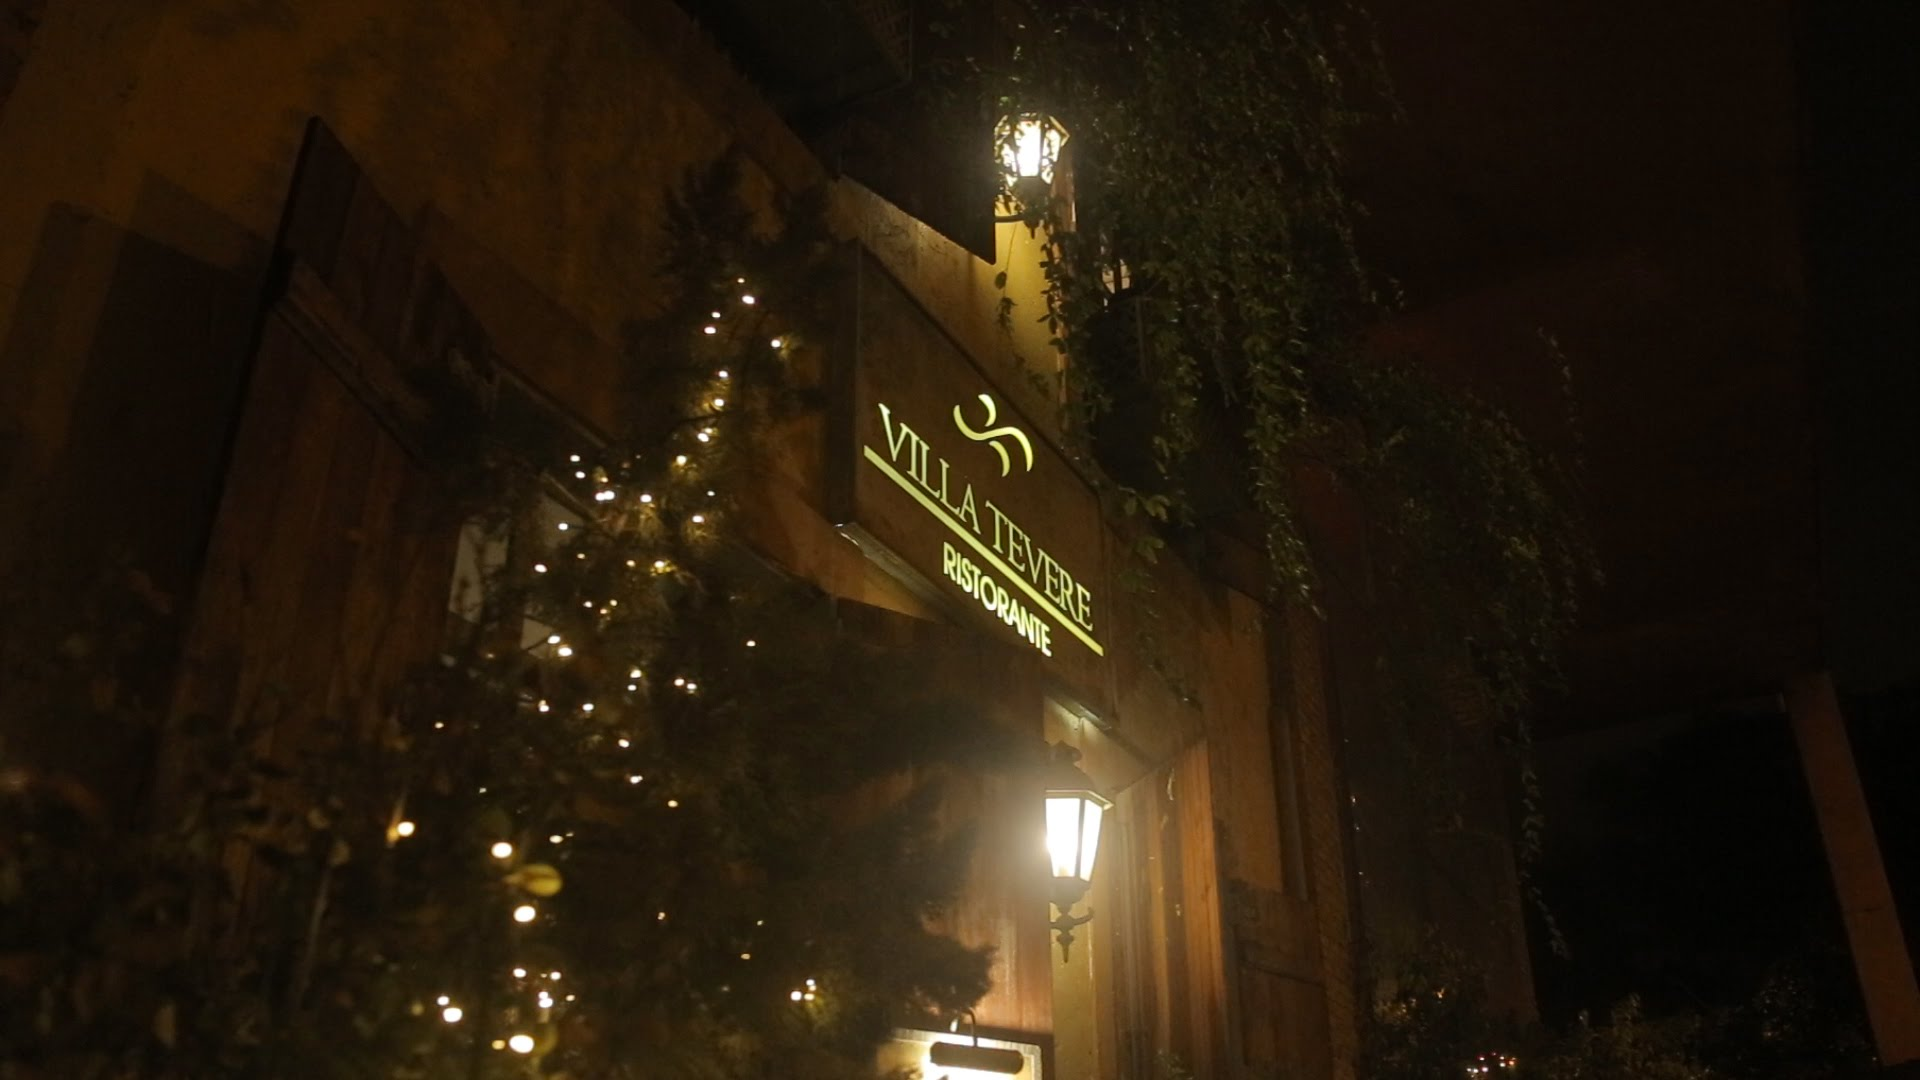 Video Institucional Villa Tevere Ristorante